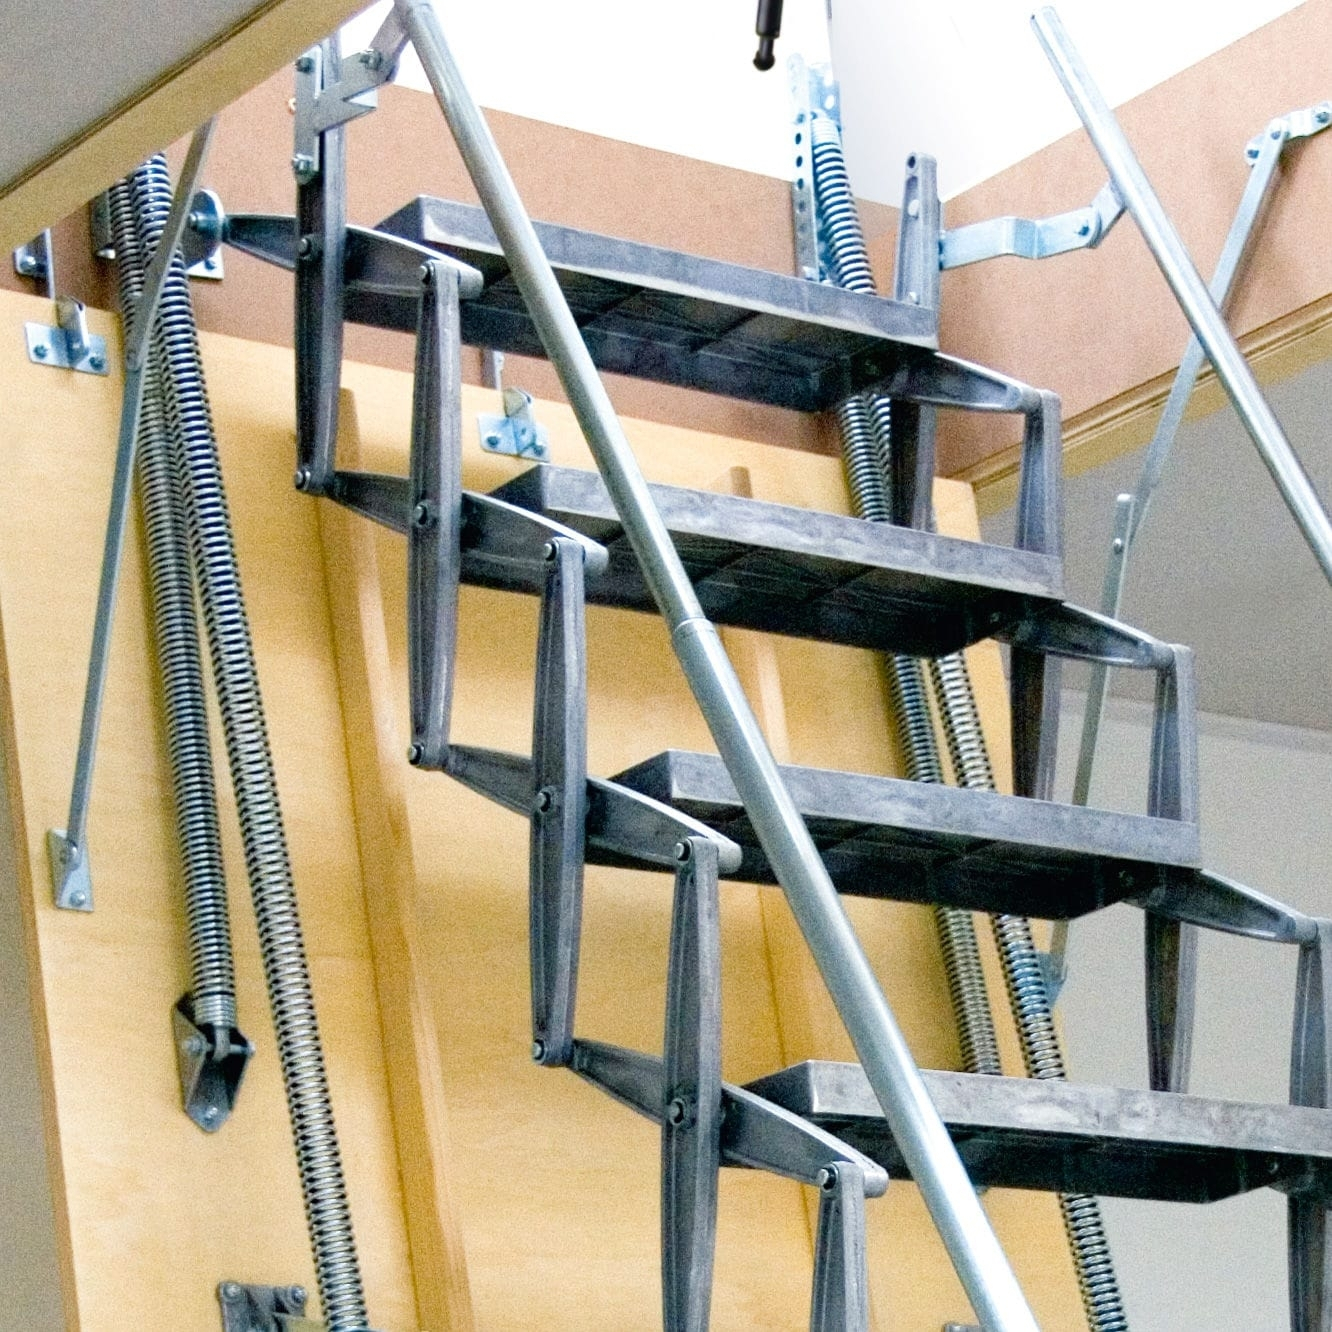 How To Install An Attic Ladder Diy At Bunnings You